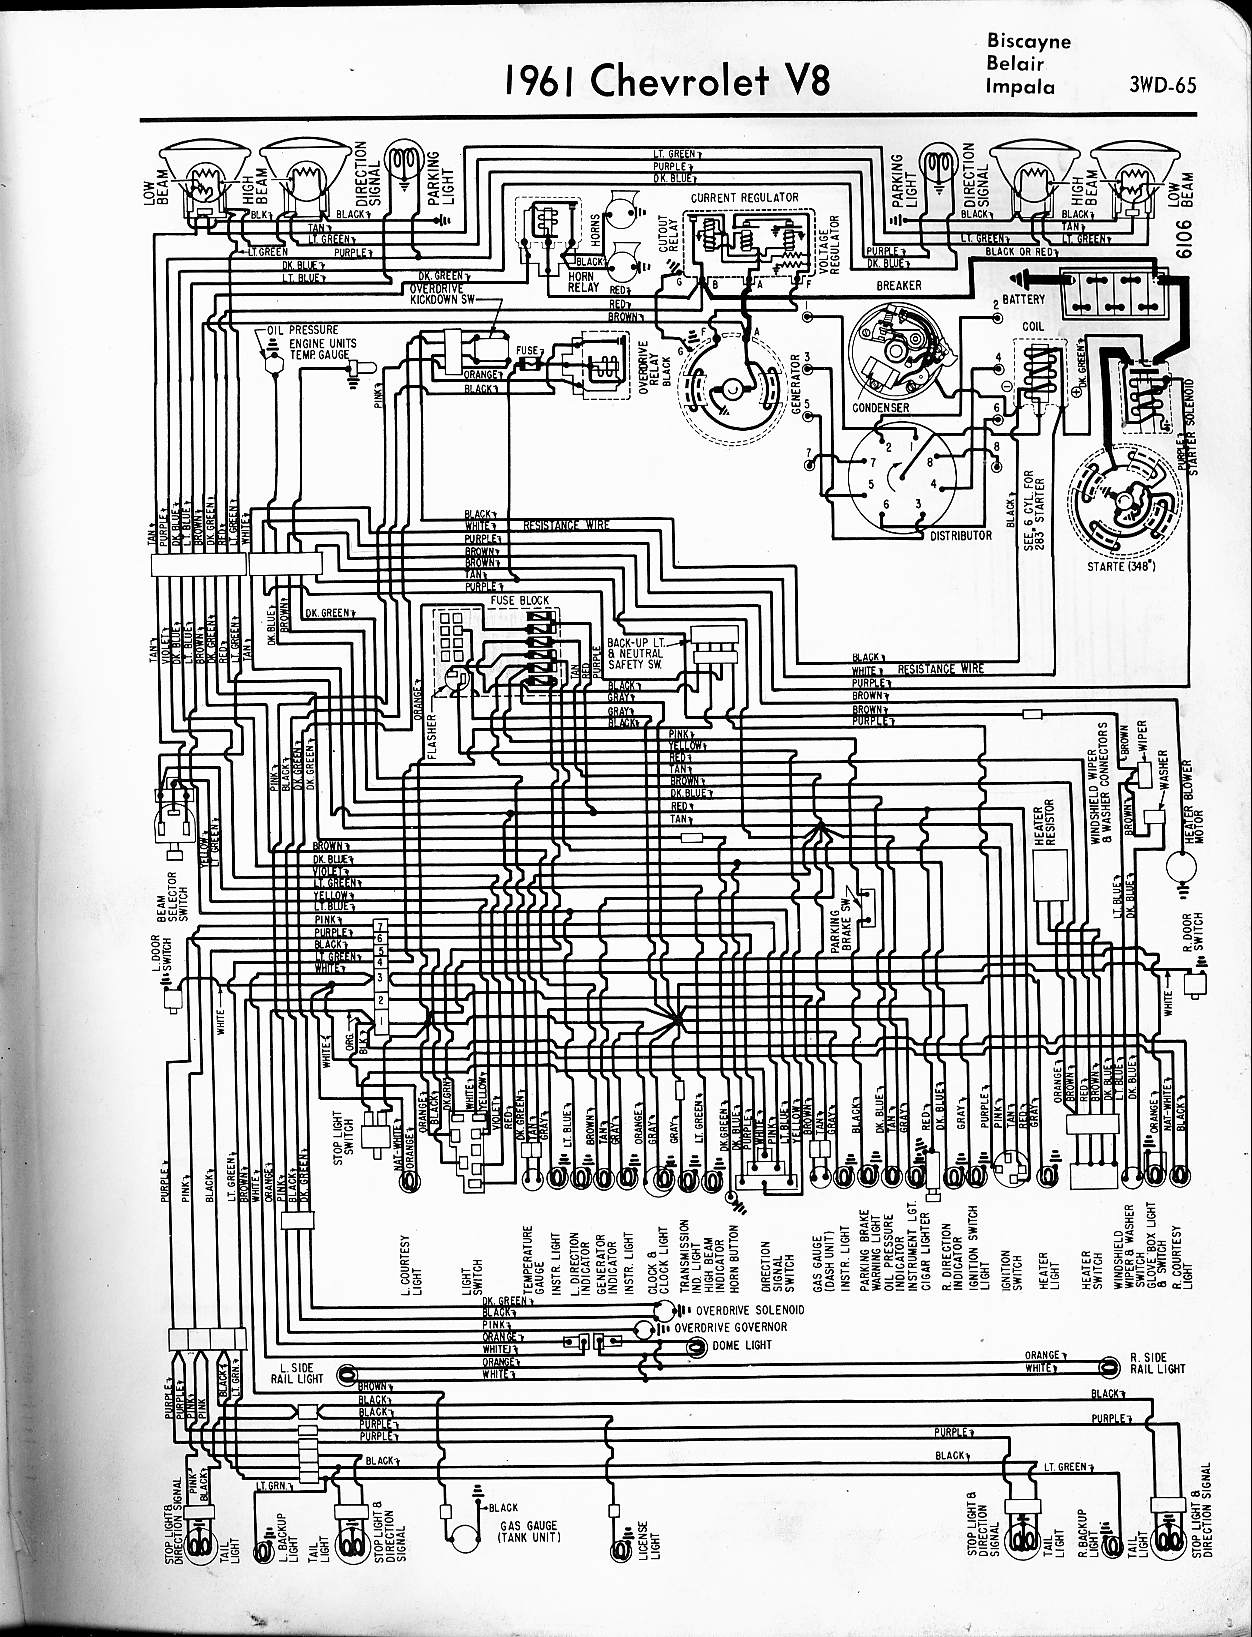 1961 Chevy Wiring Harness Diagram Gm Will Be A Thing Painless Schematic 57 65 Diagrams Rh Oldcarmanualproject Com Gmc